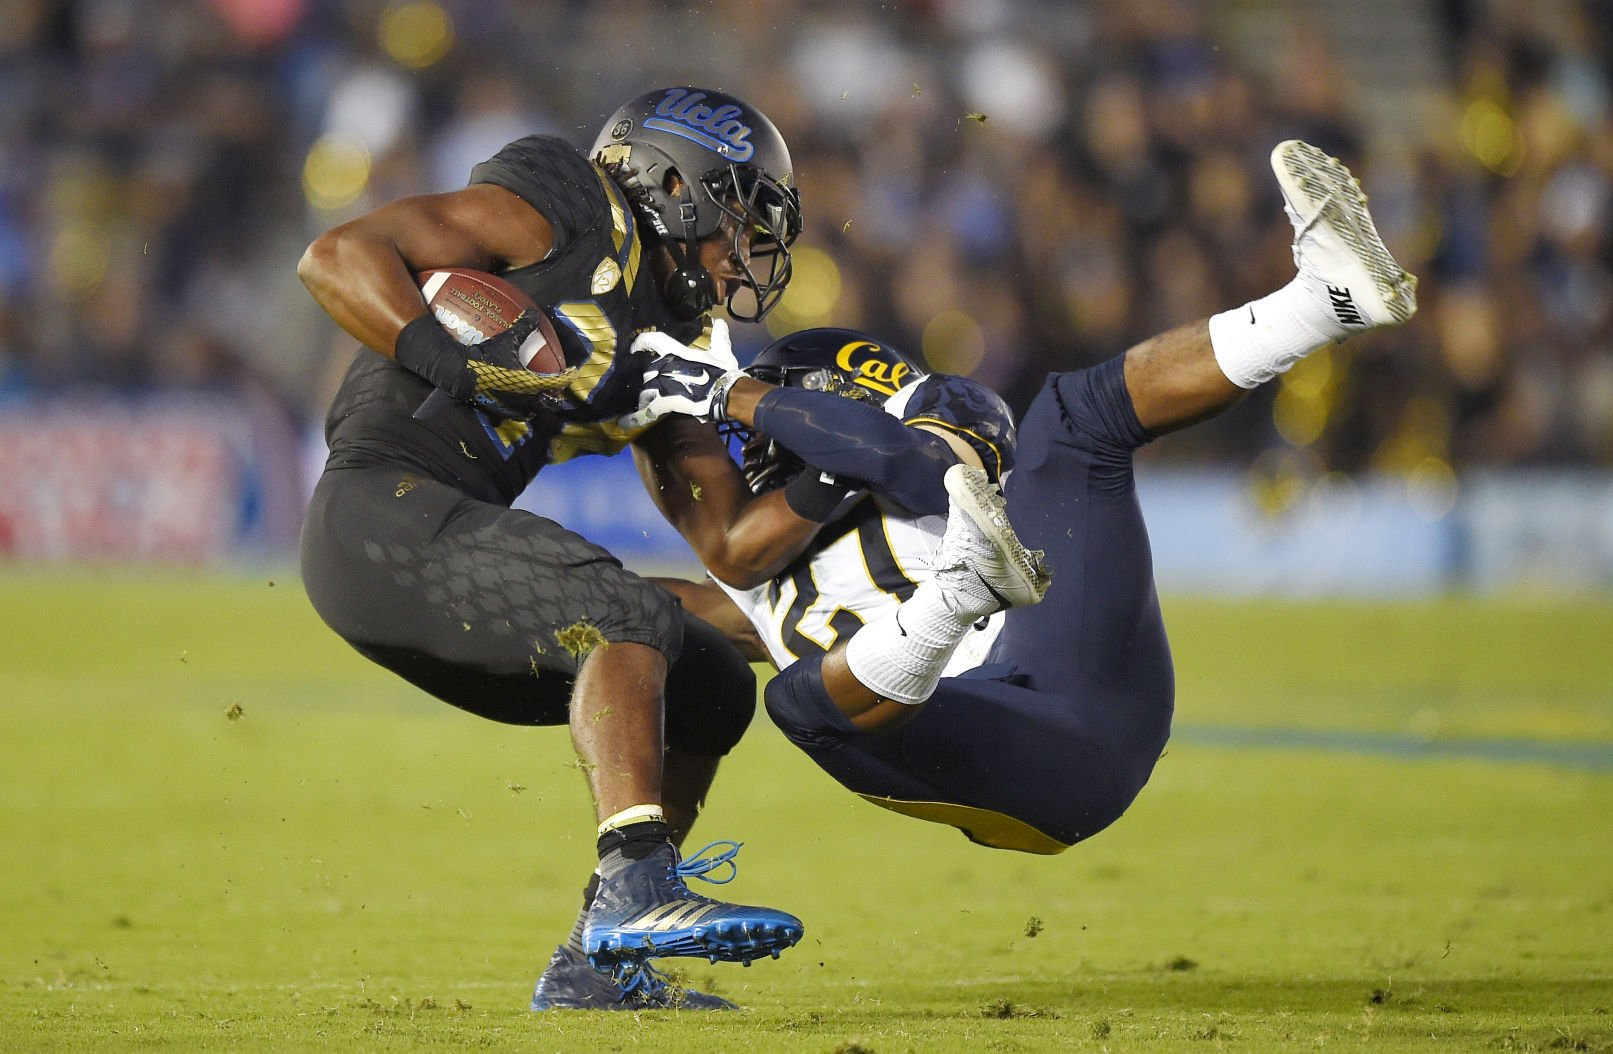 Pac-12 football: Cal upset by UCLA 40-24